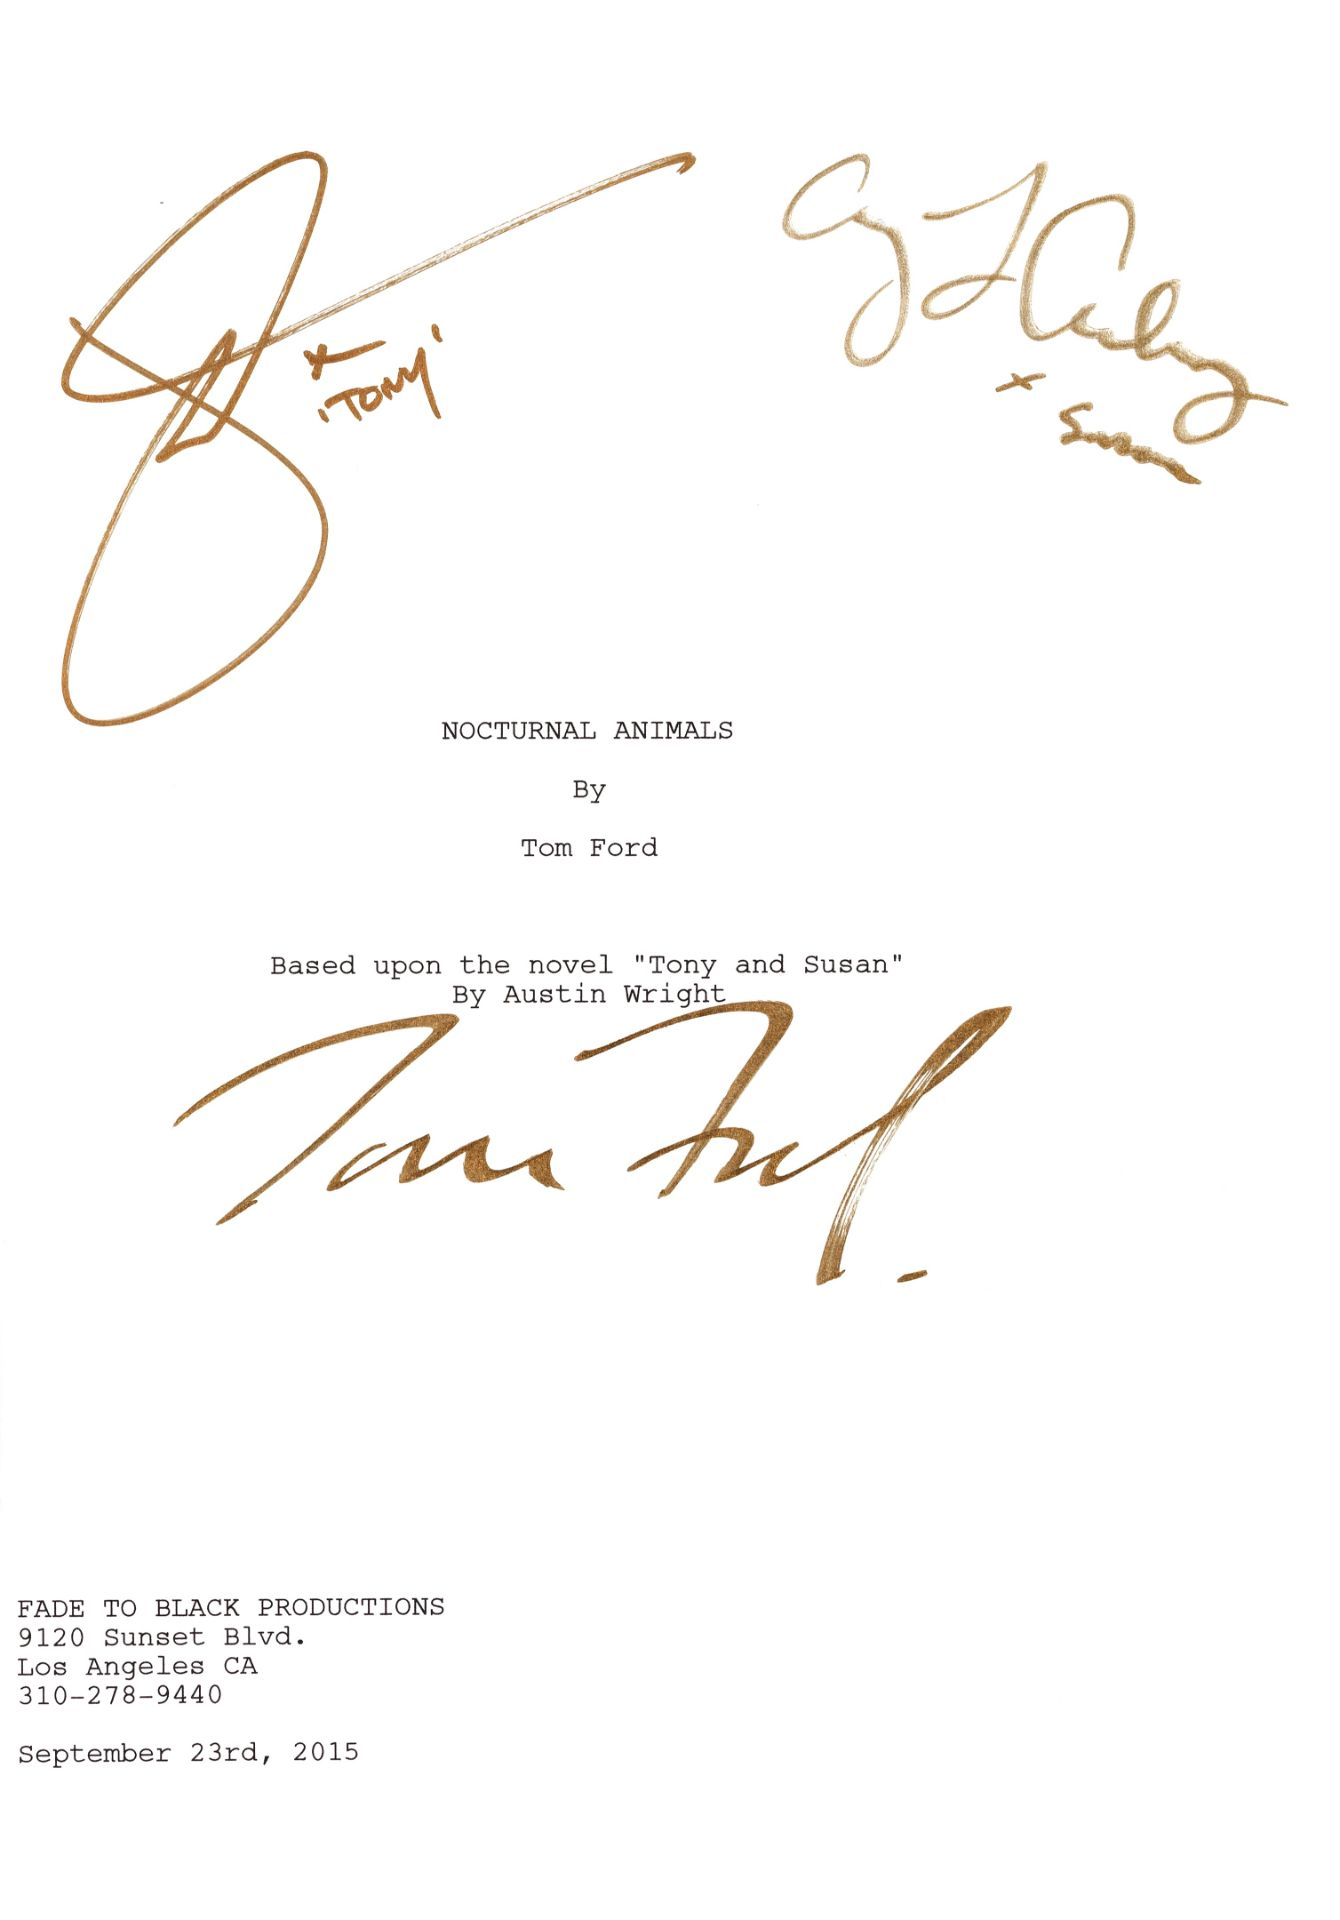 Nocturnal Animals: A signed script, Fade To Black Productions, 2016,